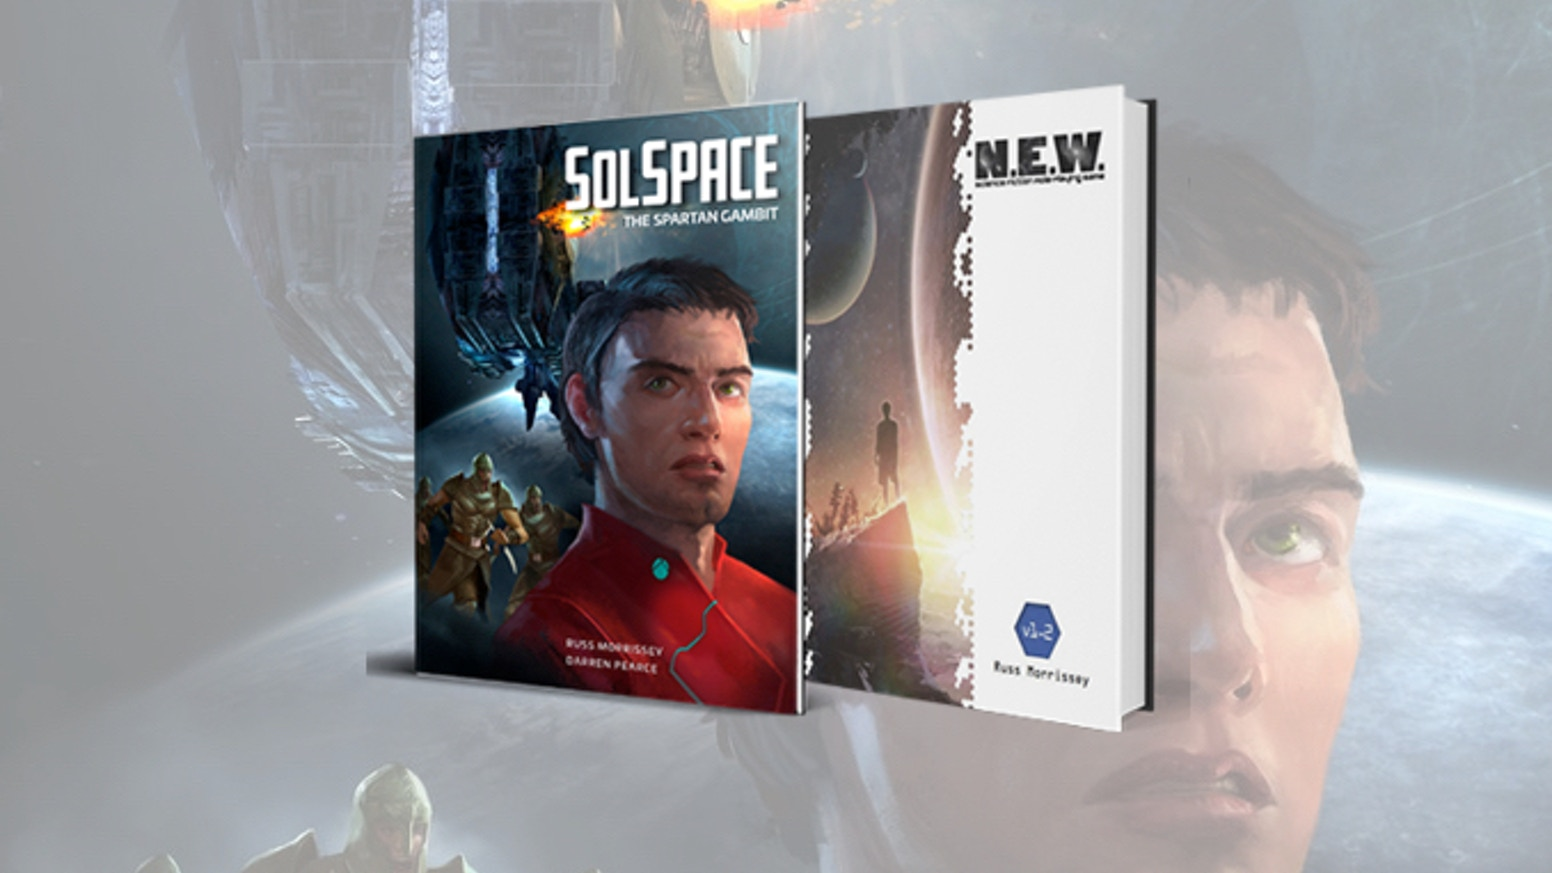 It's Die Hard... on a starship! Can the PCs end the Spartan siege of the USF Copernicus? Plus full deck plans of an entire starship!